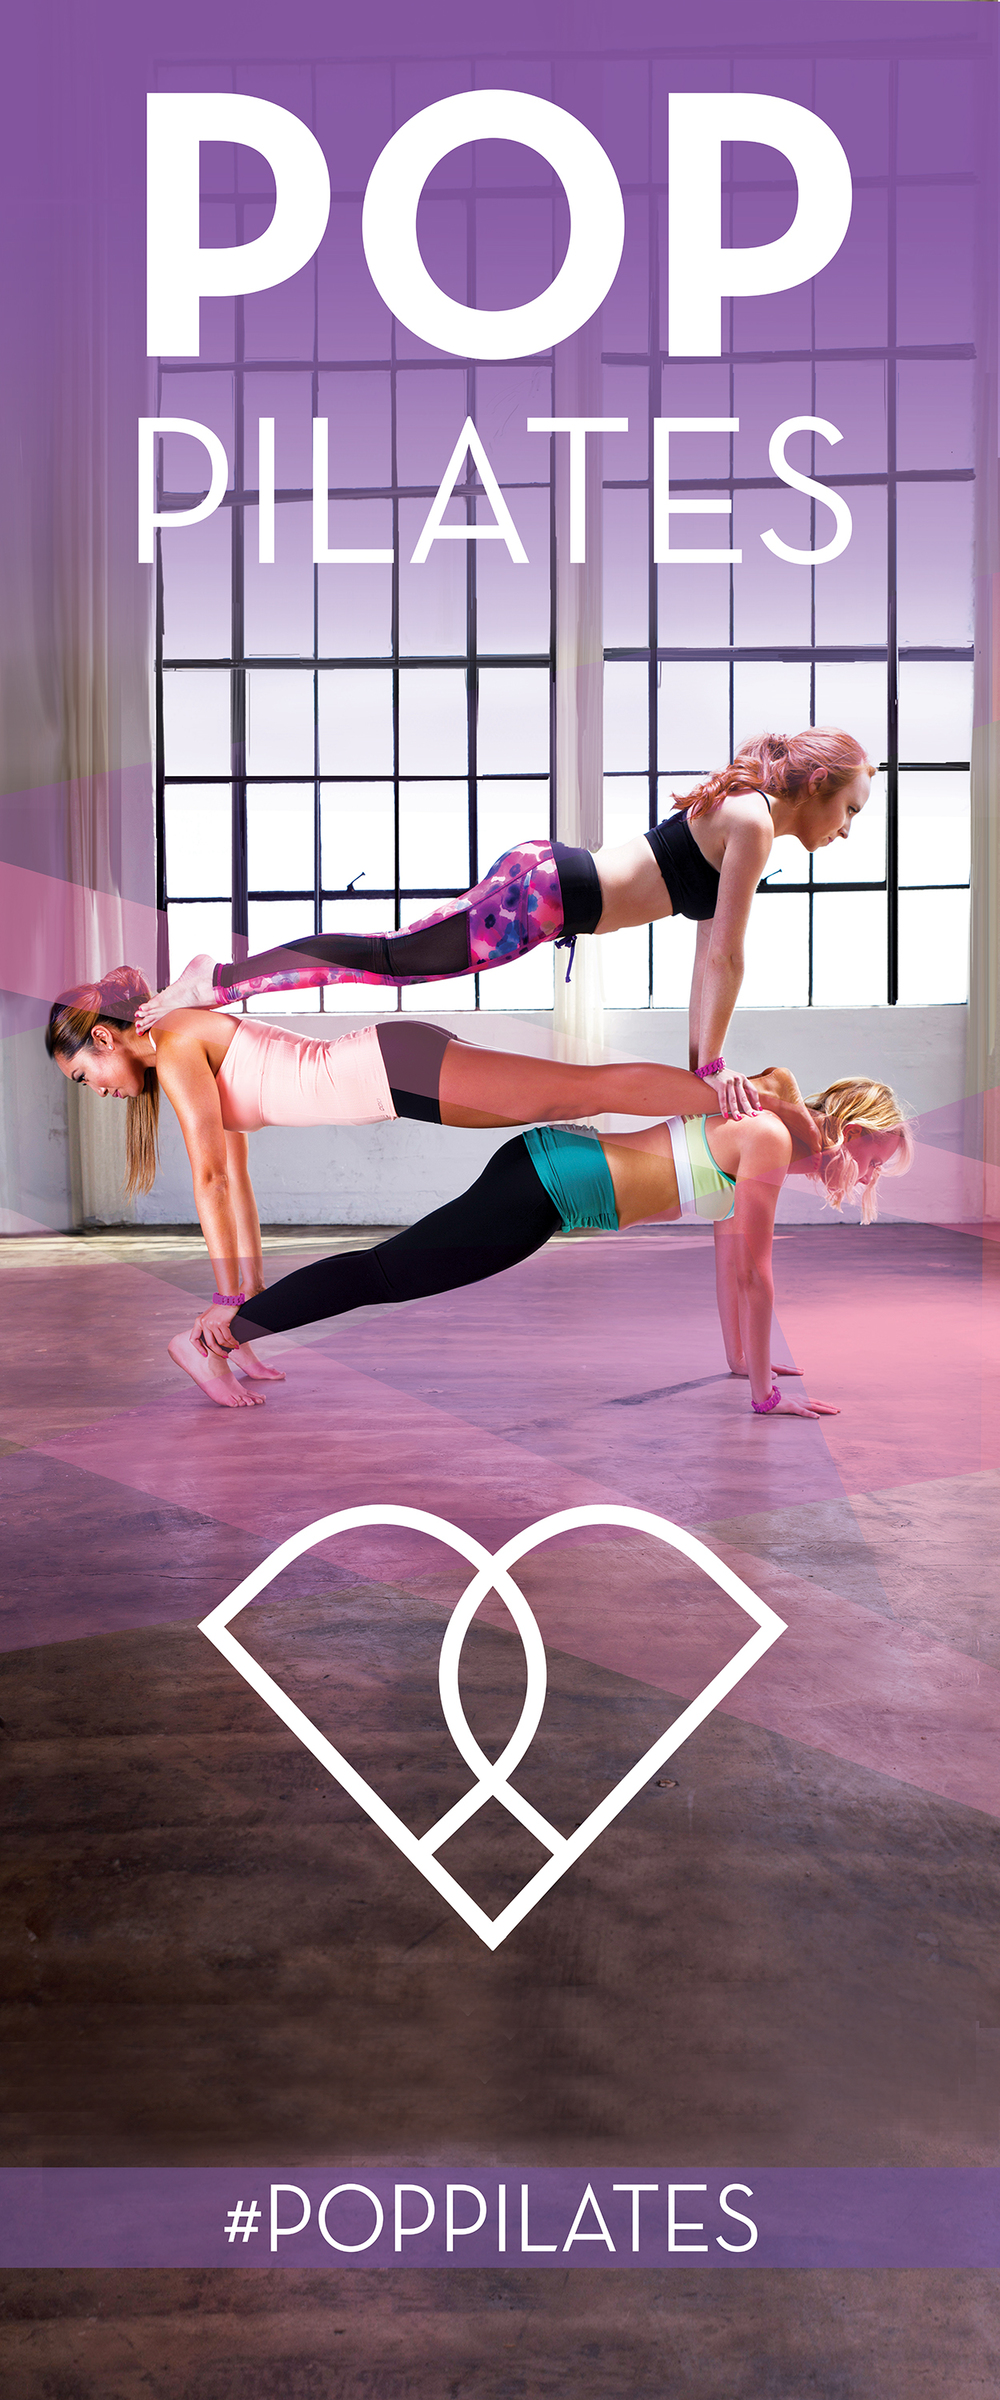 POP PILATES BANNER (30x72) copy-2.JPG